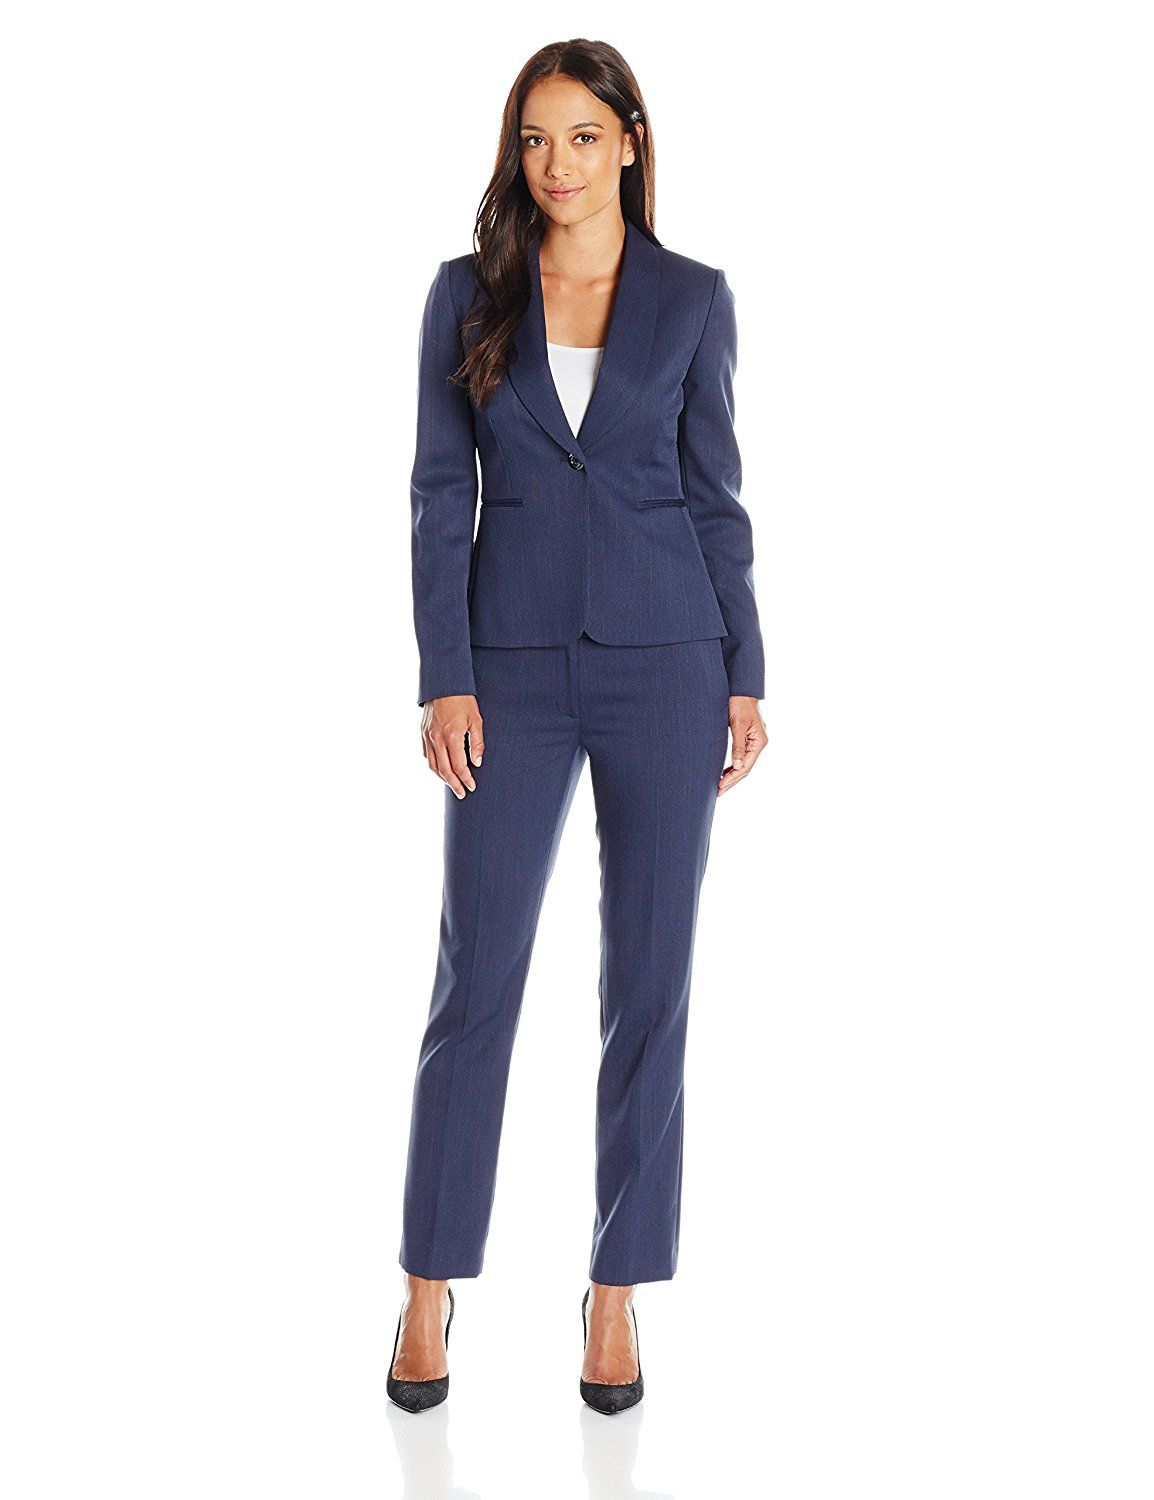 grey-naked-petite-womens-business-suits-naked